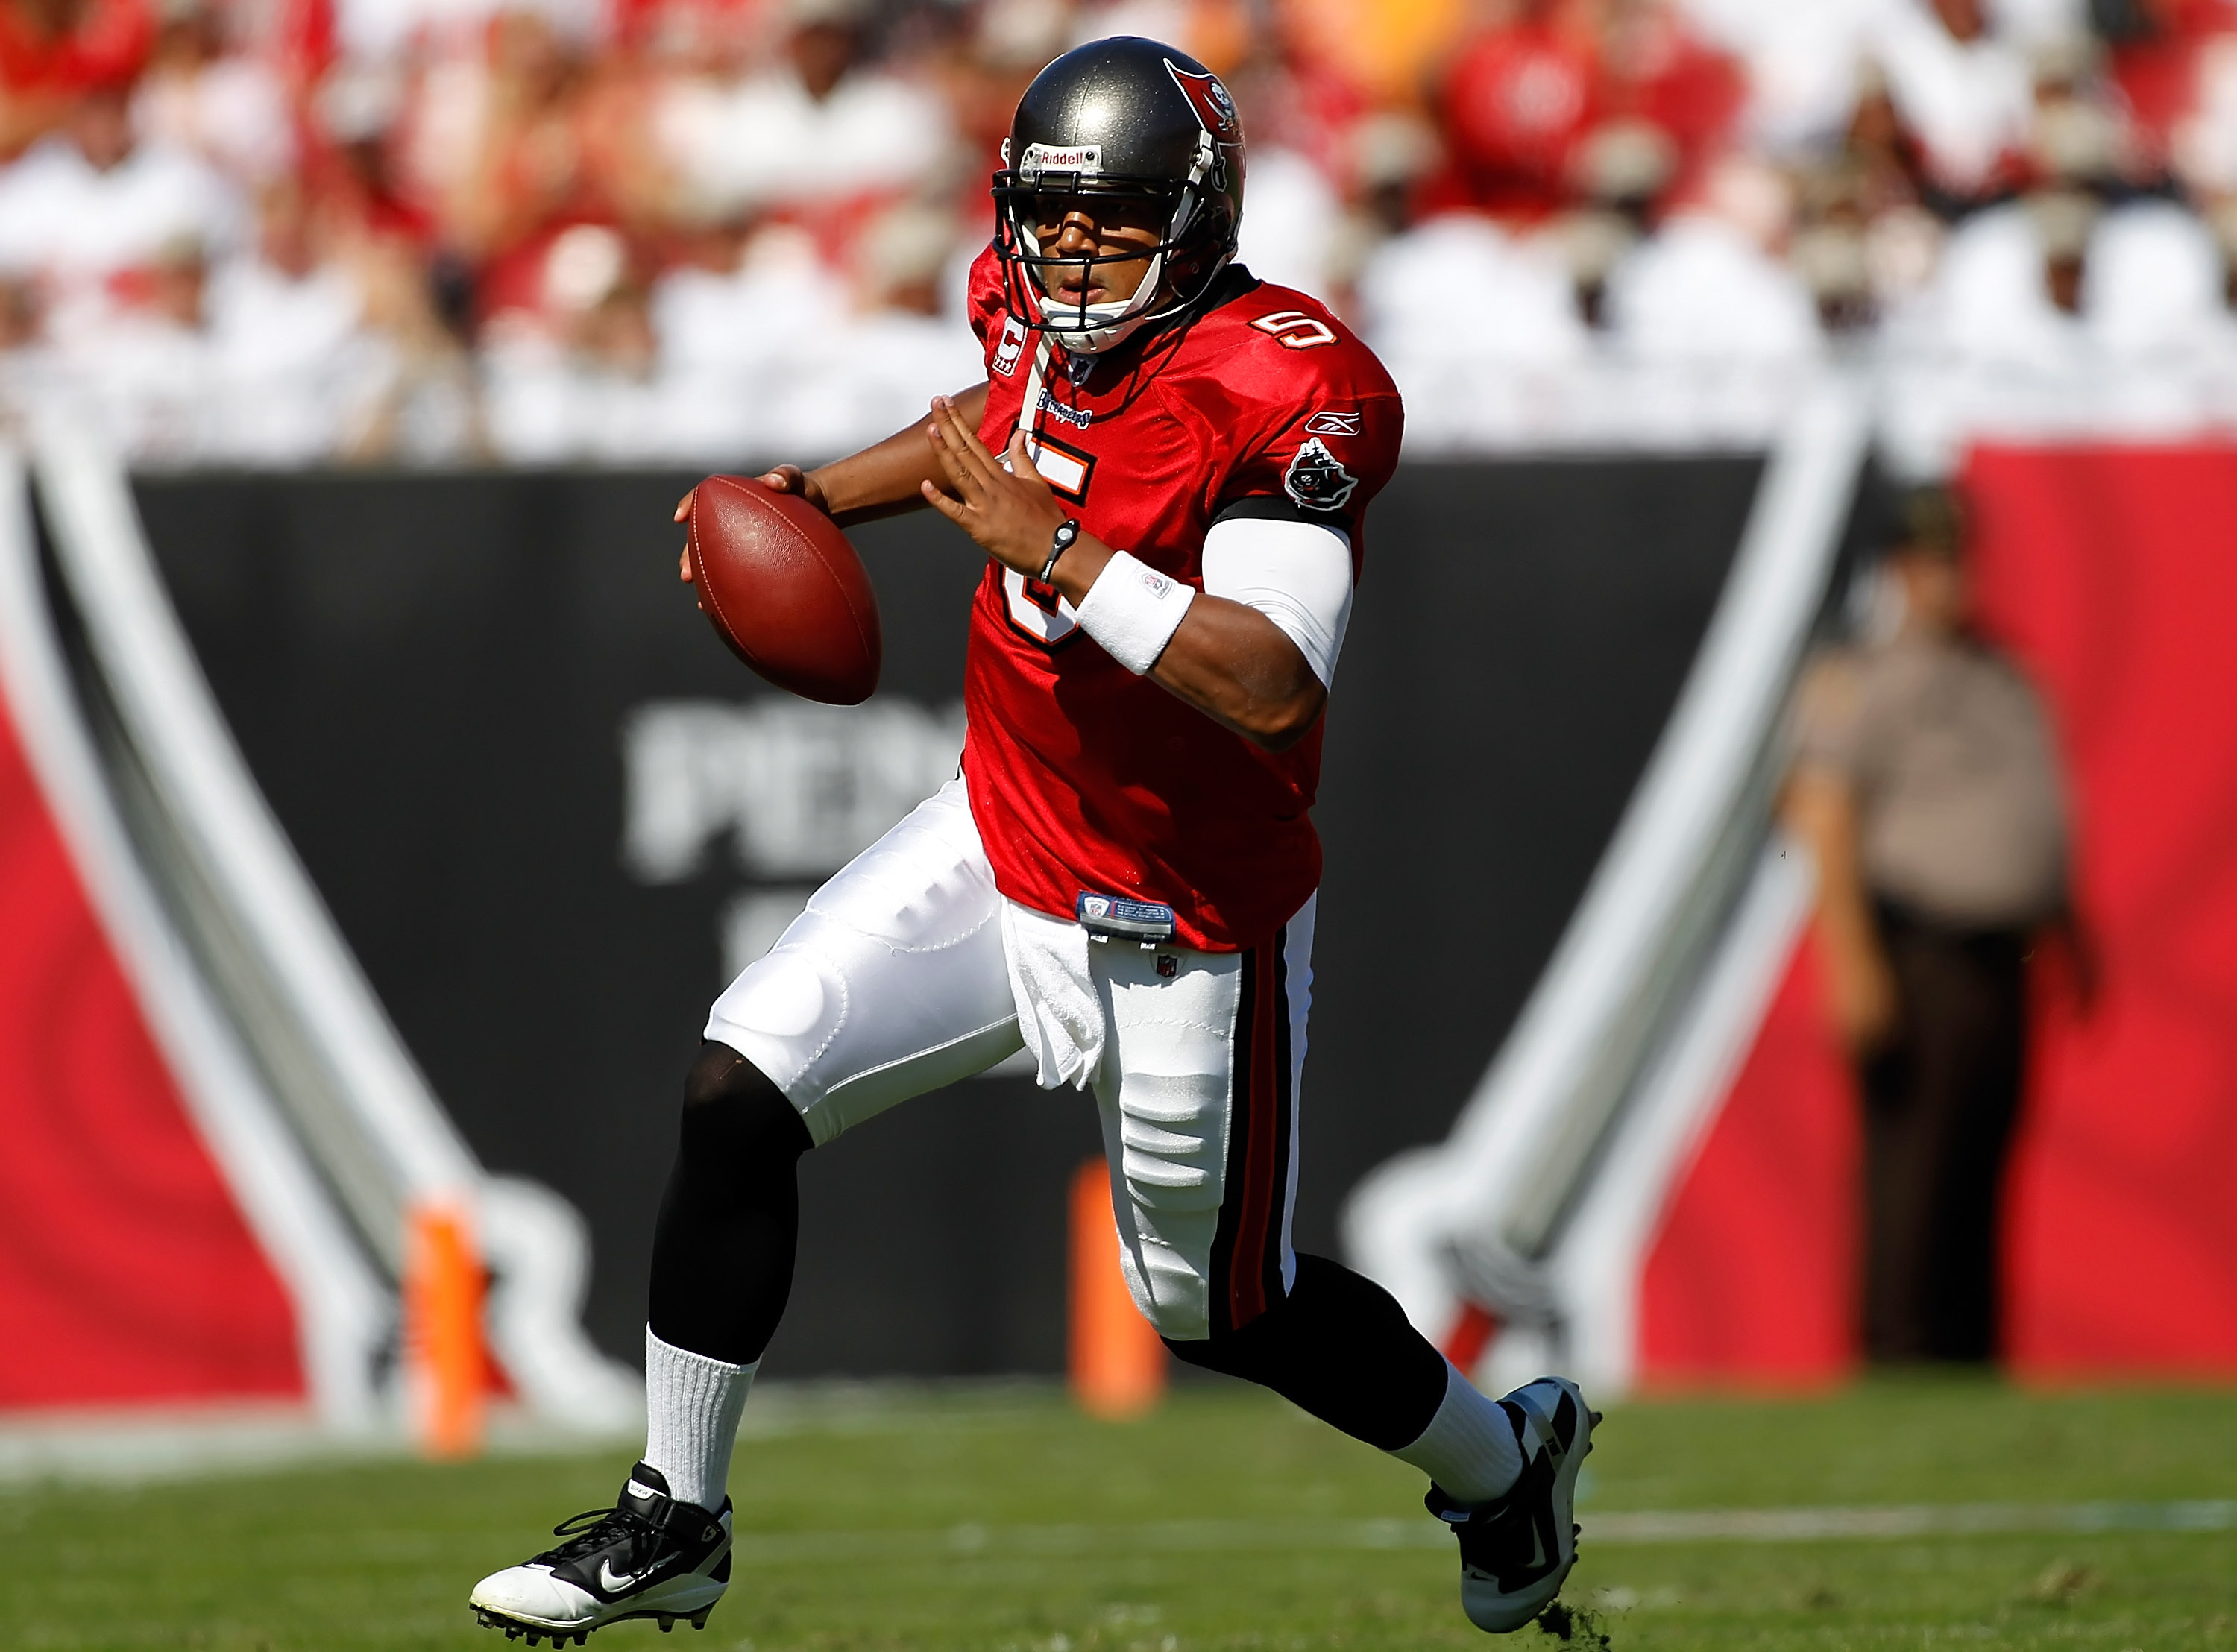 TAMPA, FL - NOVEMBER 14:  Quarterback Josh Freeman #5 of the Tampa Bay Buccaneers scrambles against the Carolina Panthers during the game at Raymond James Stadium on November 14, 2010 in Tampa, Florida.  (Photo by J. Meric/Getty Images)